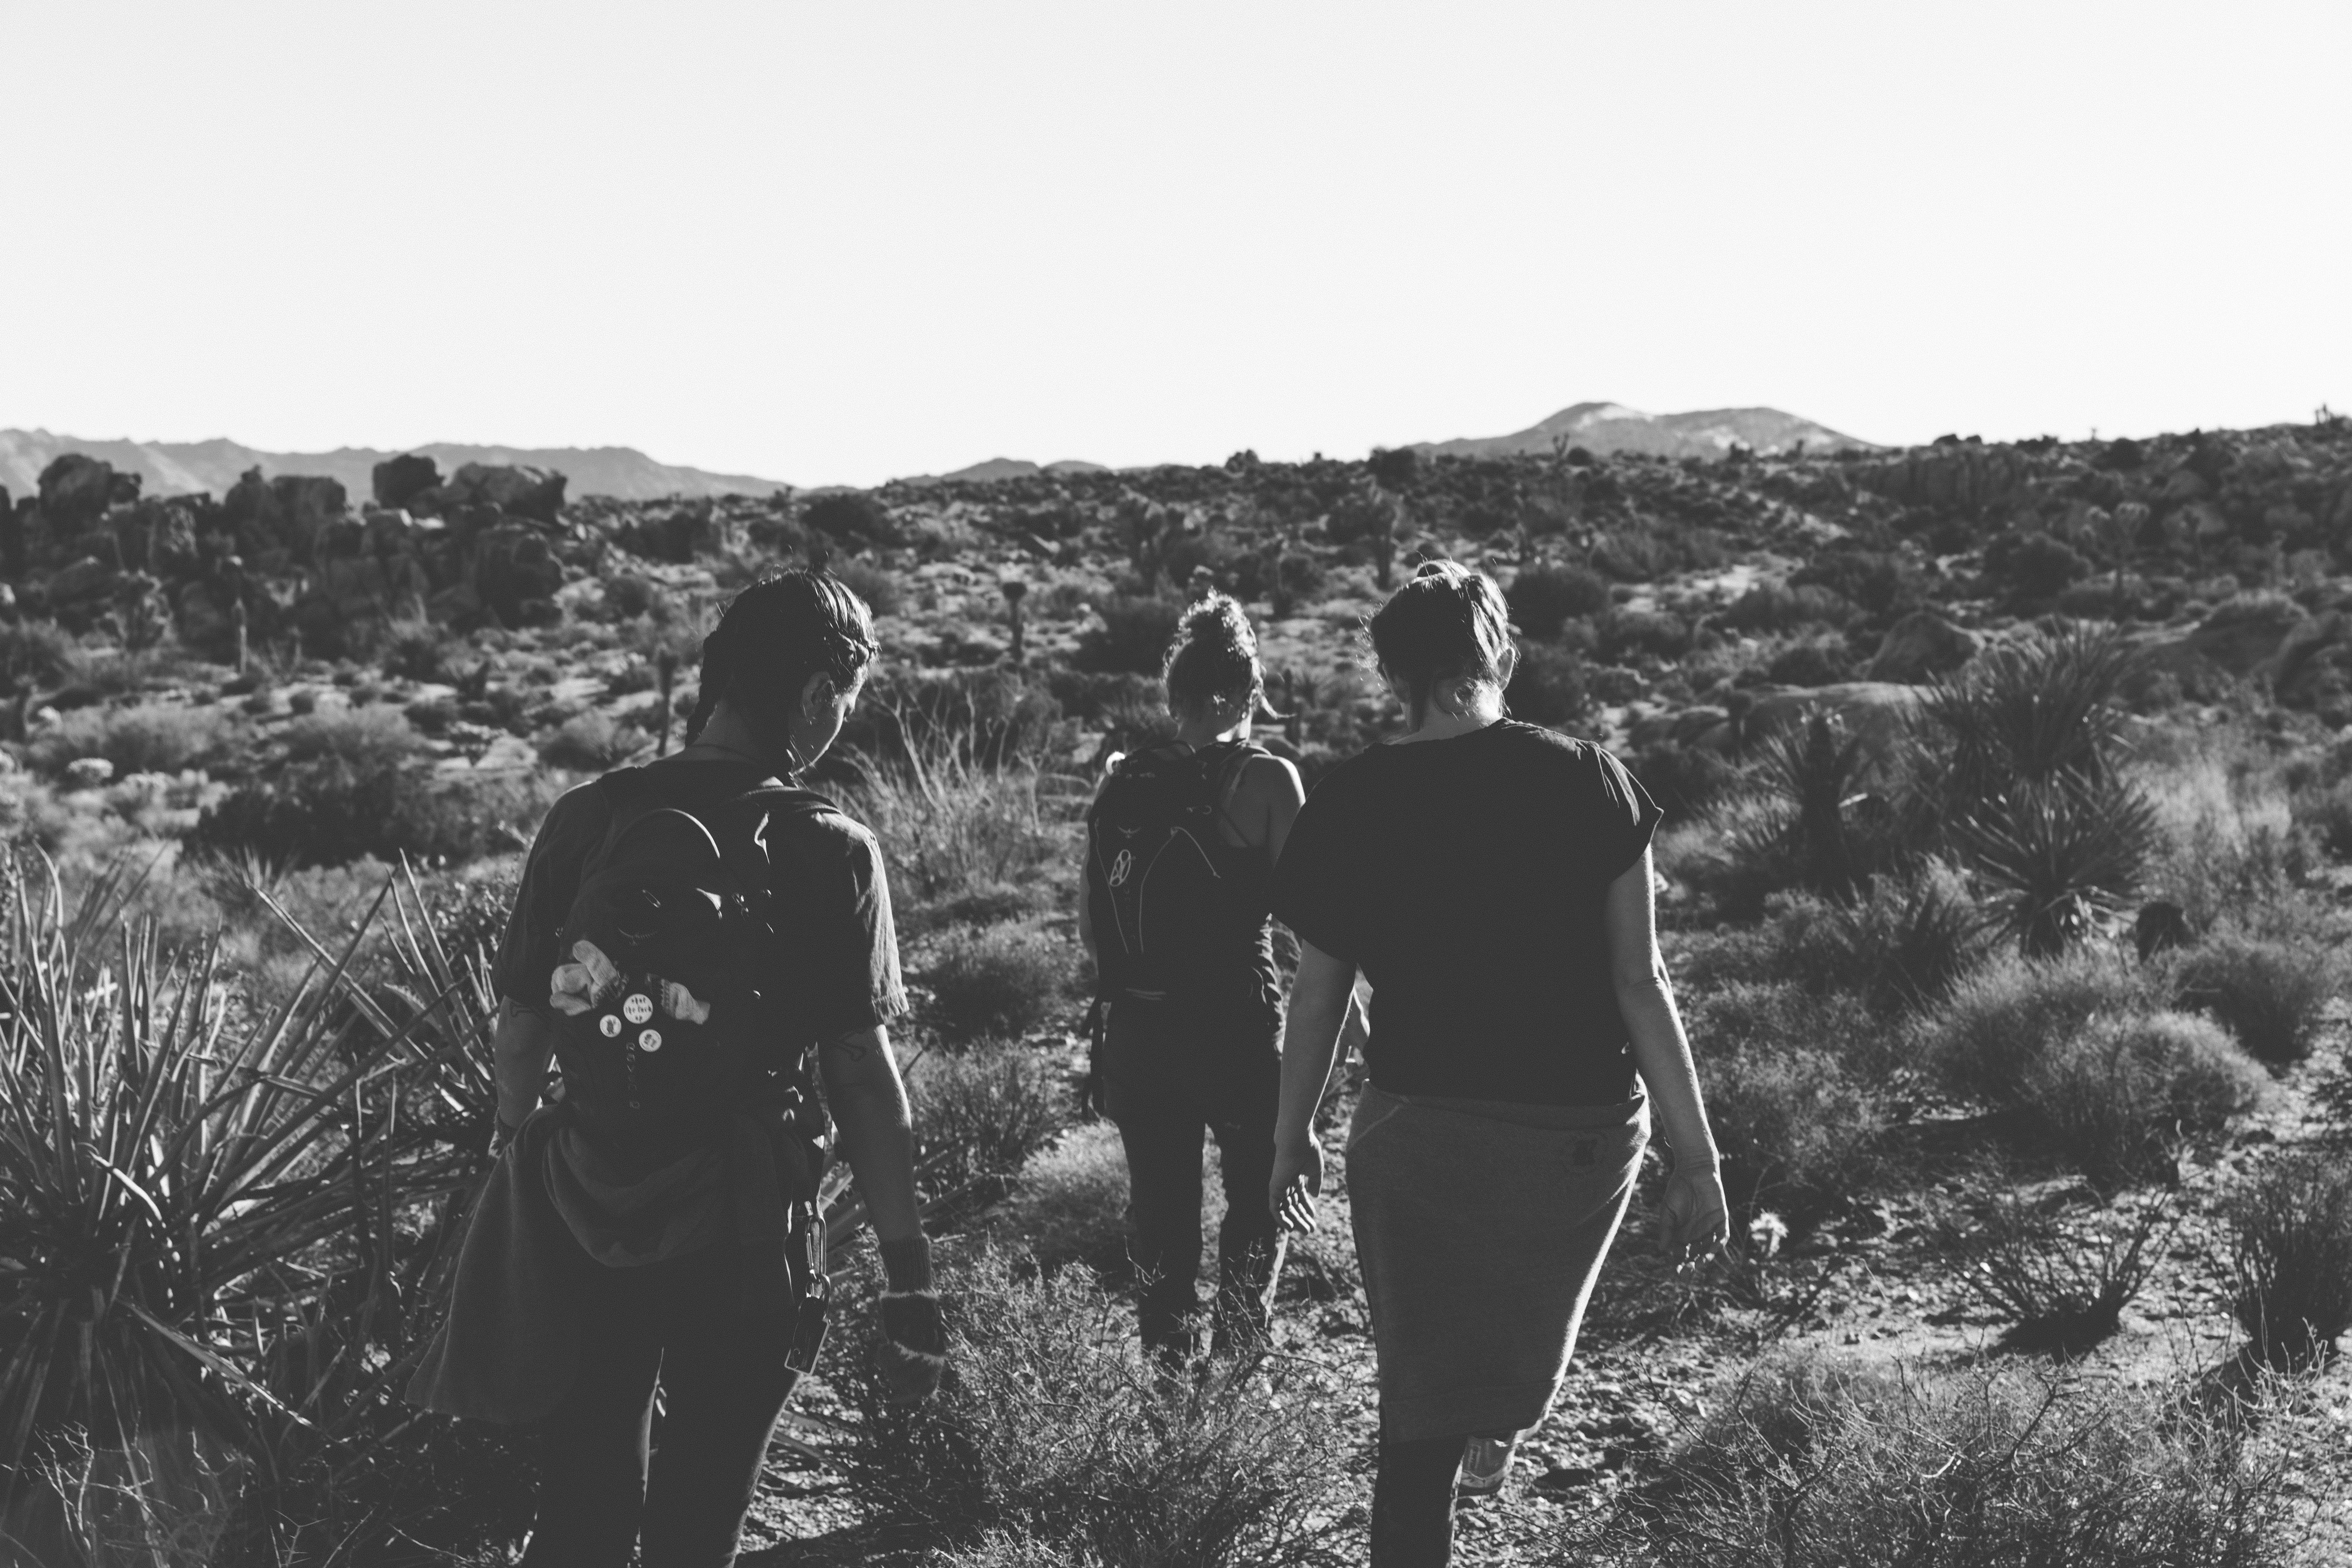 Three young people hiking through the dry grassland in Joshua Tree National Park